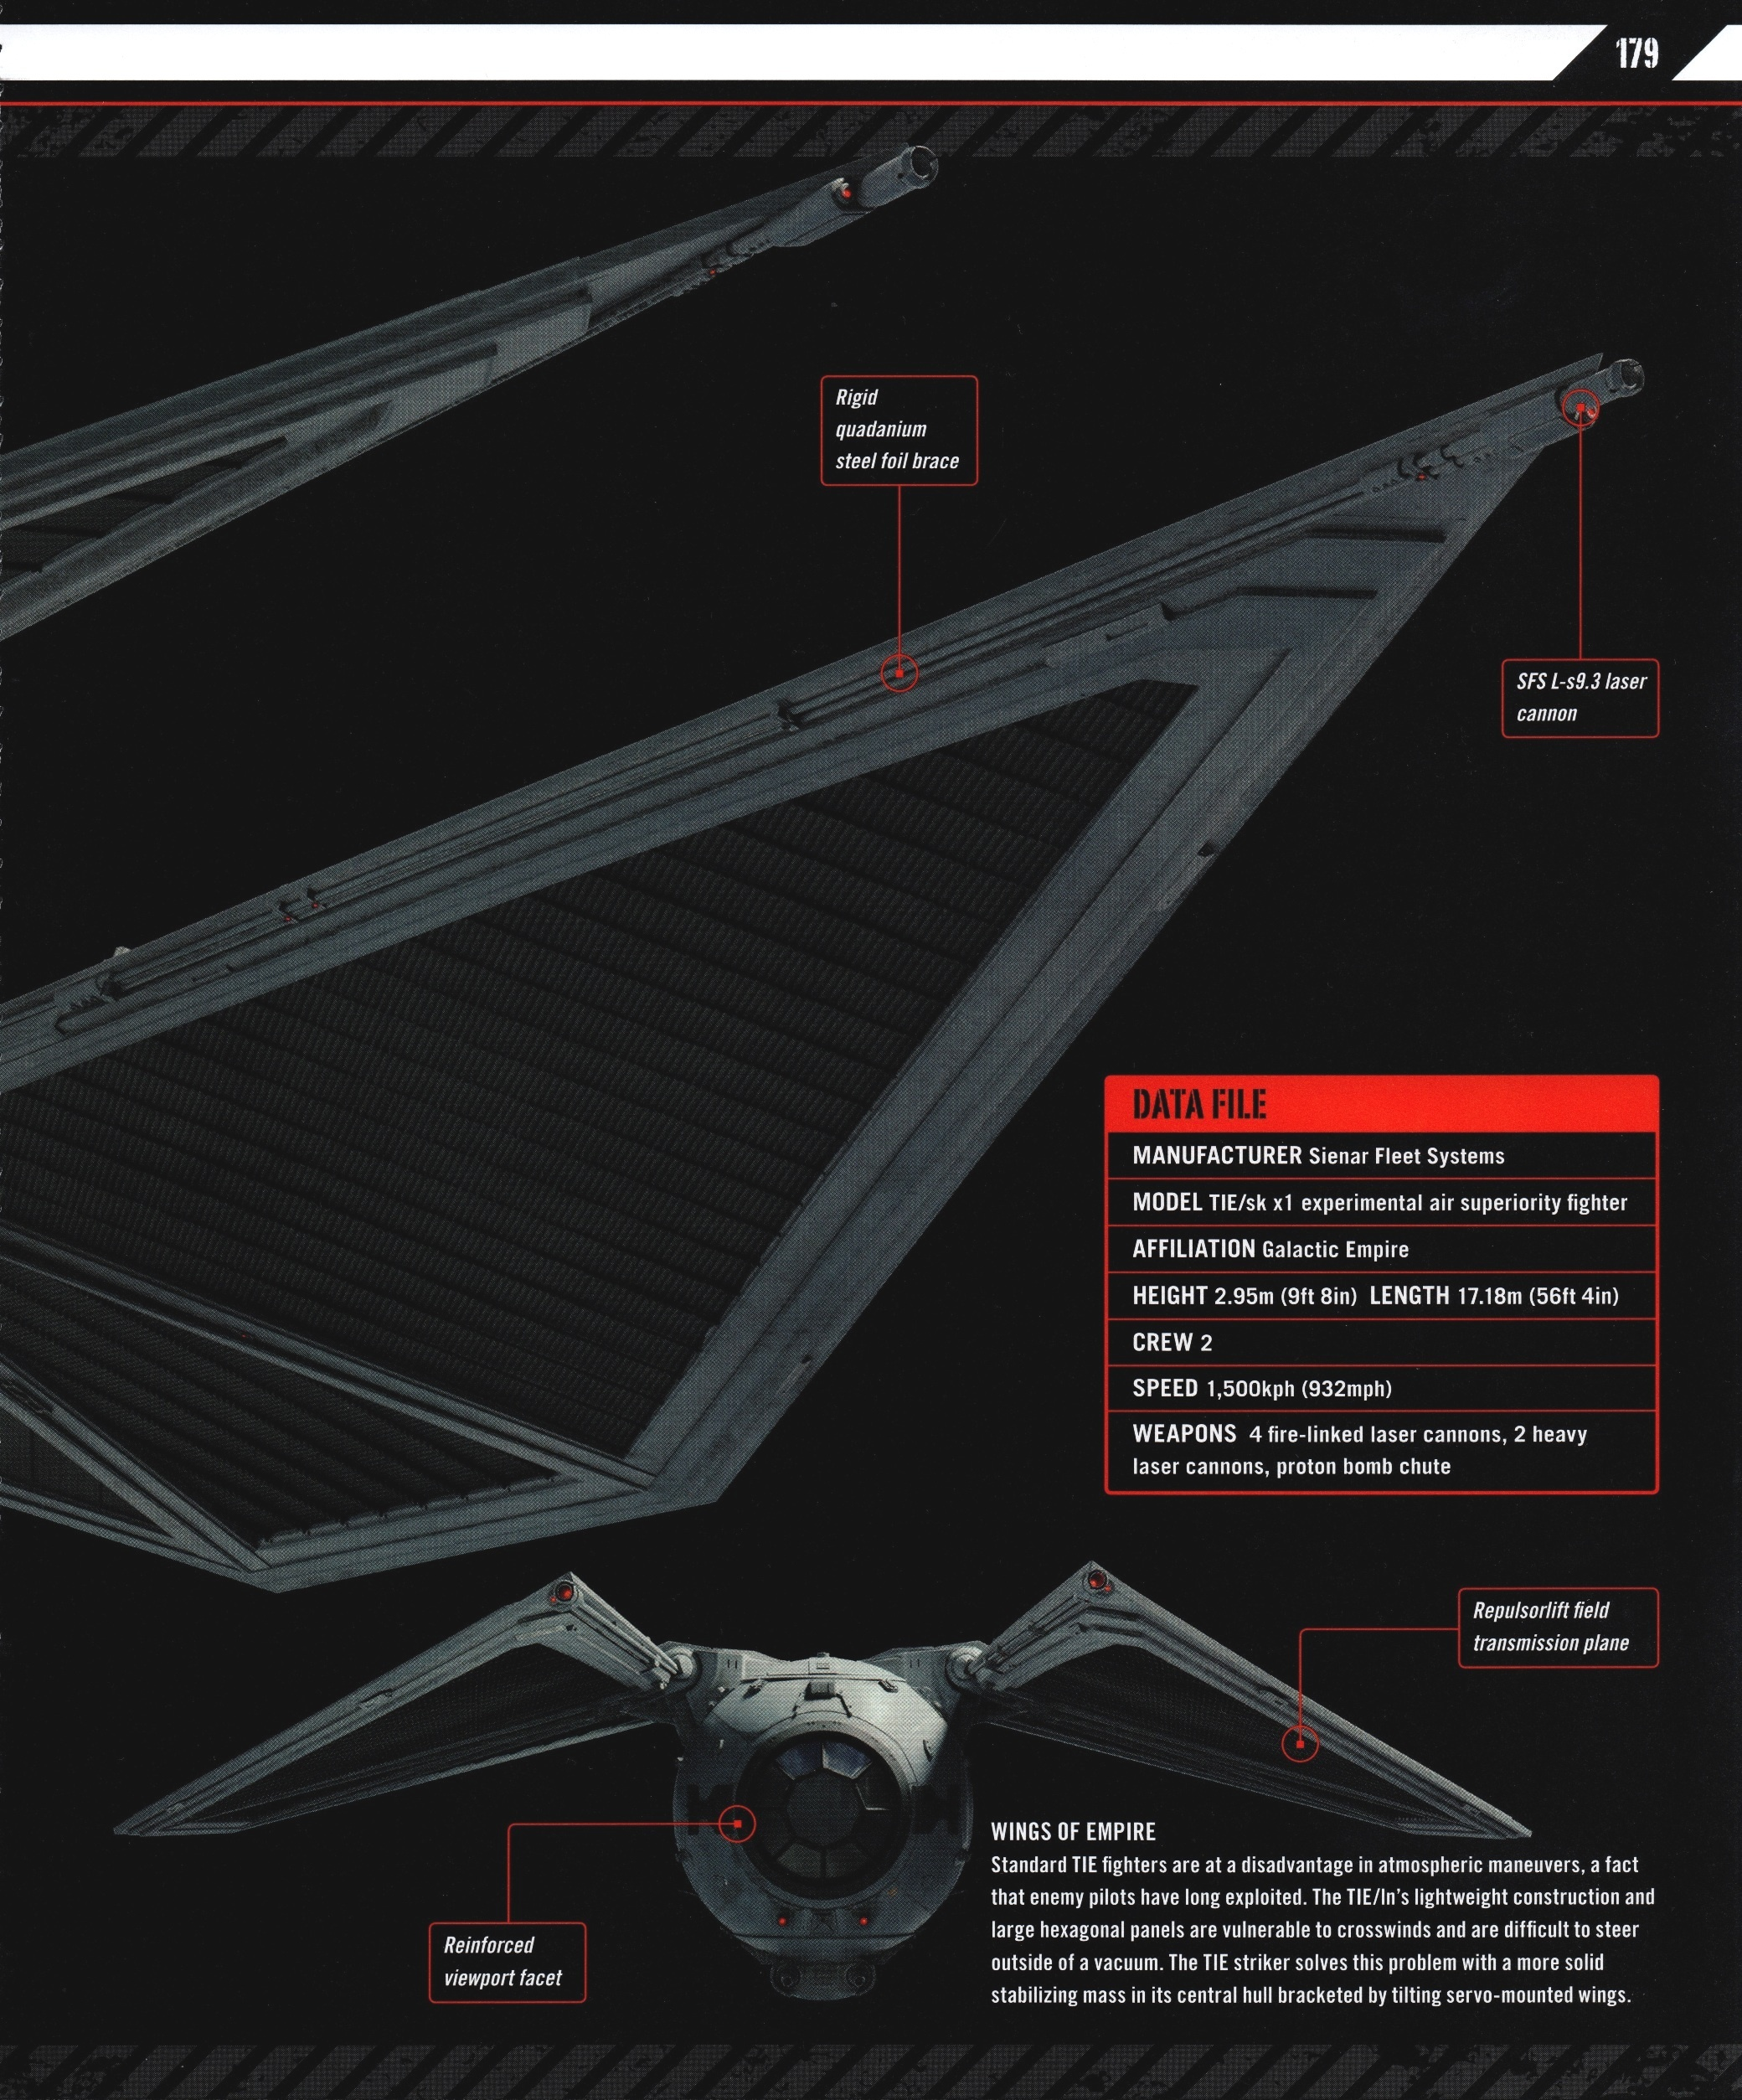 Rogue One Ultimate Visual Guide (b0bafett_Empire) p179